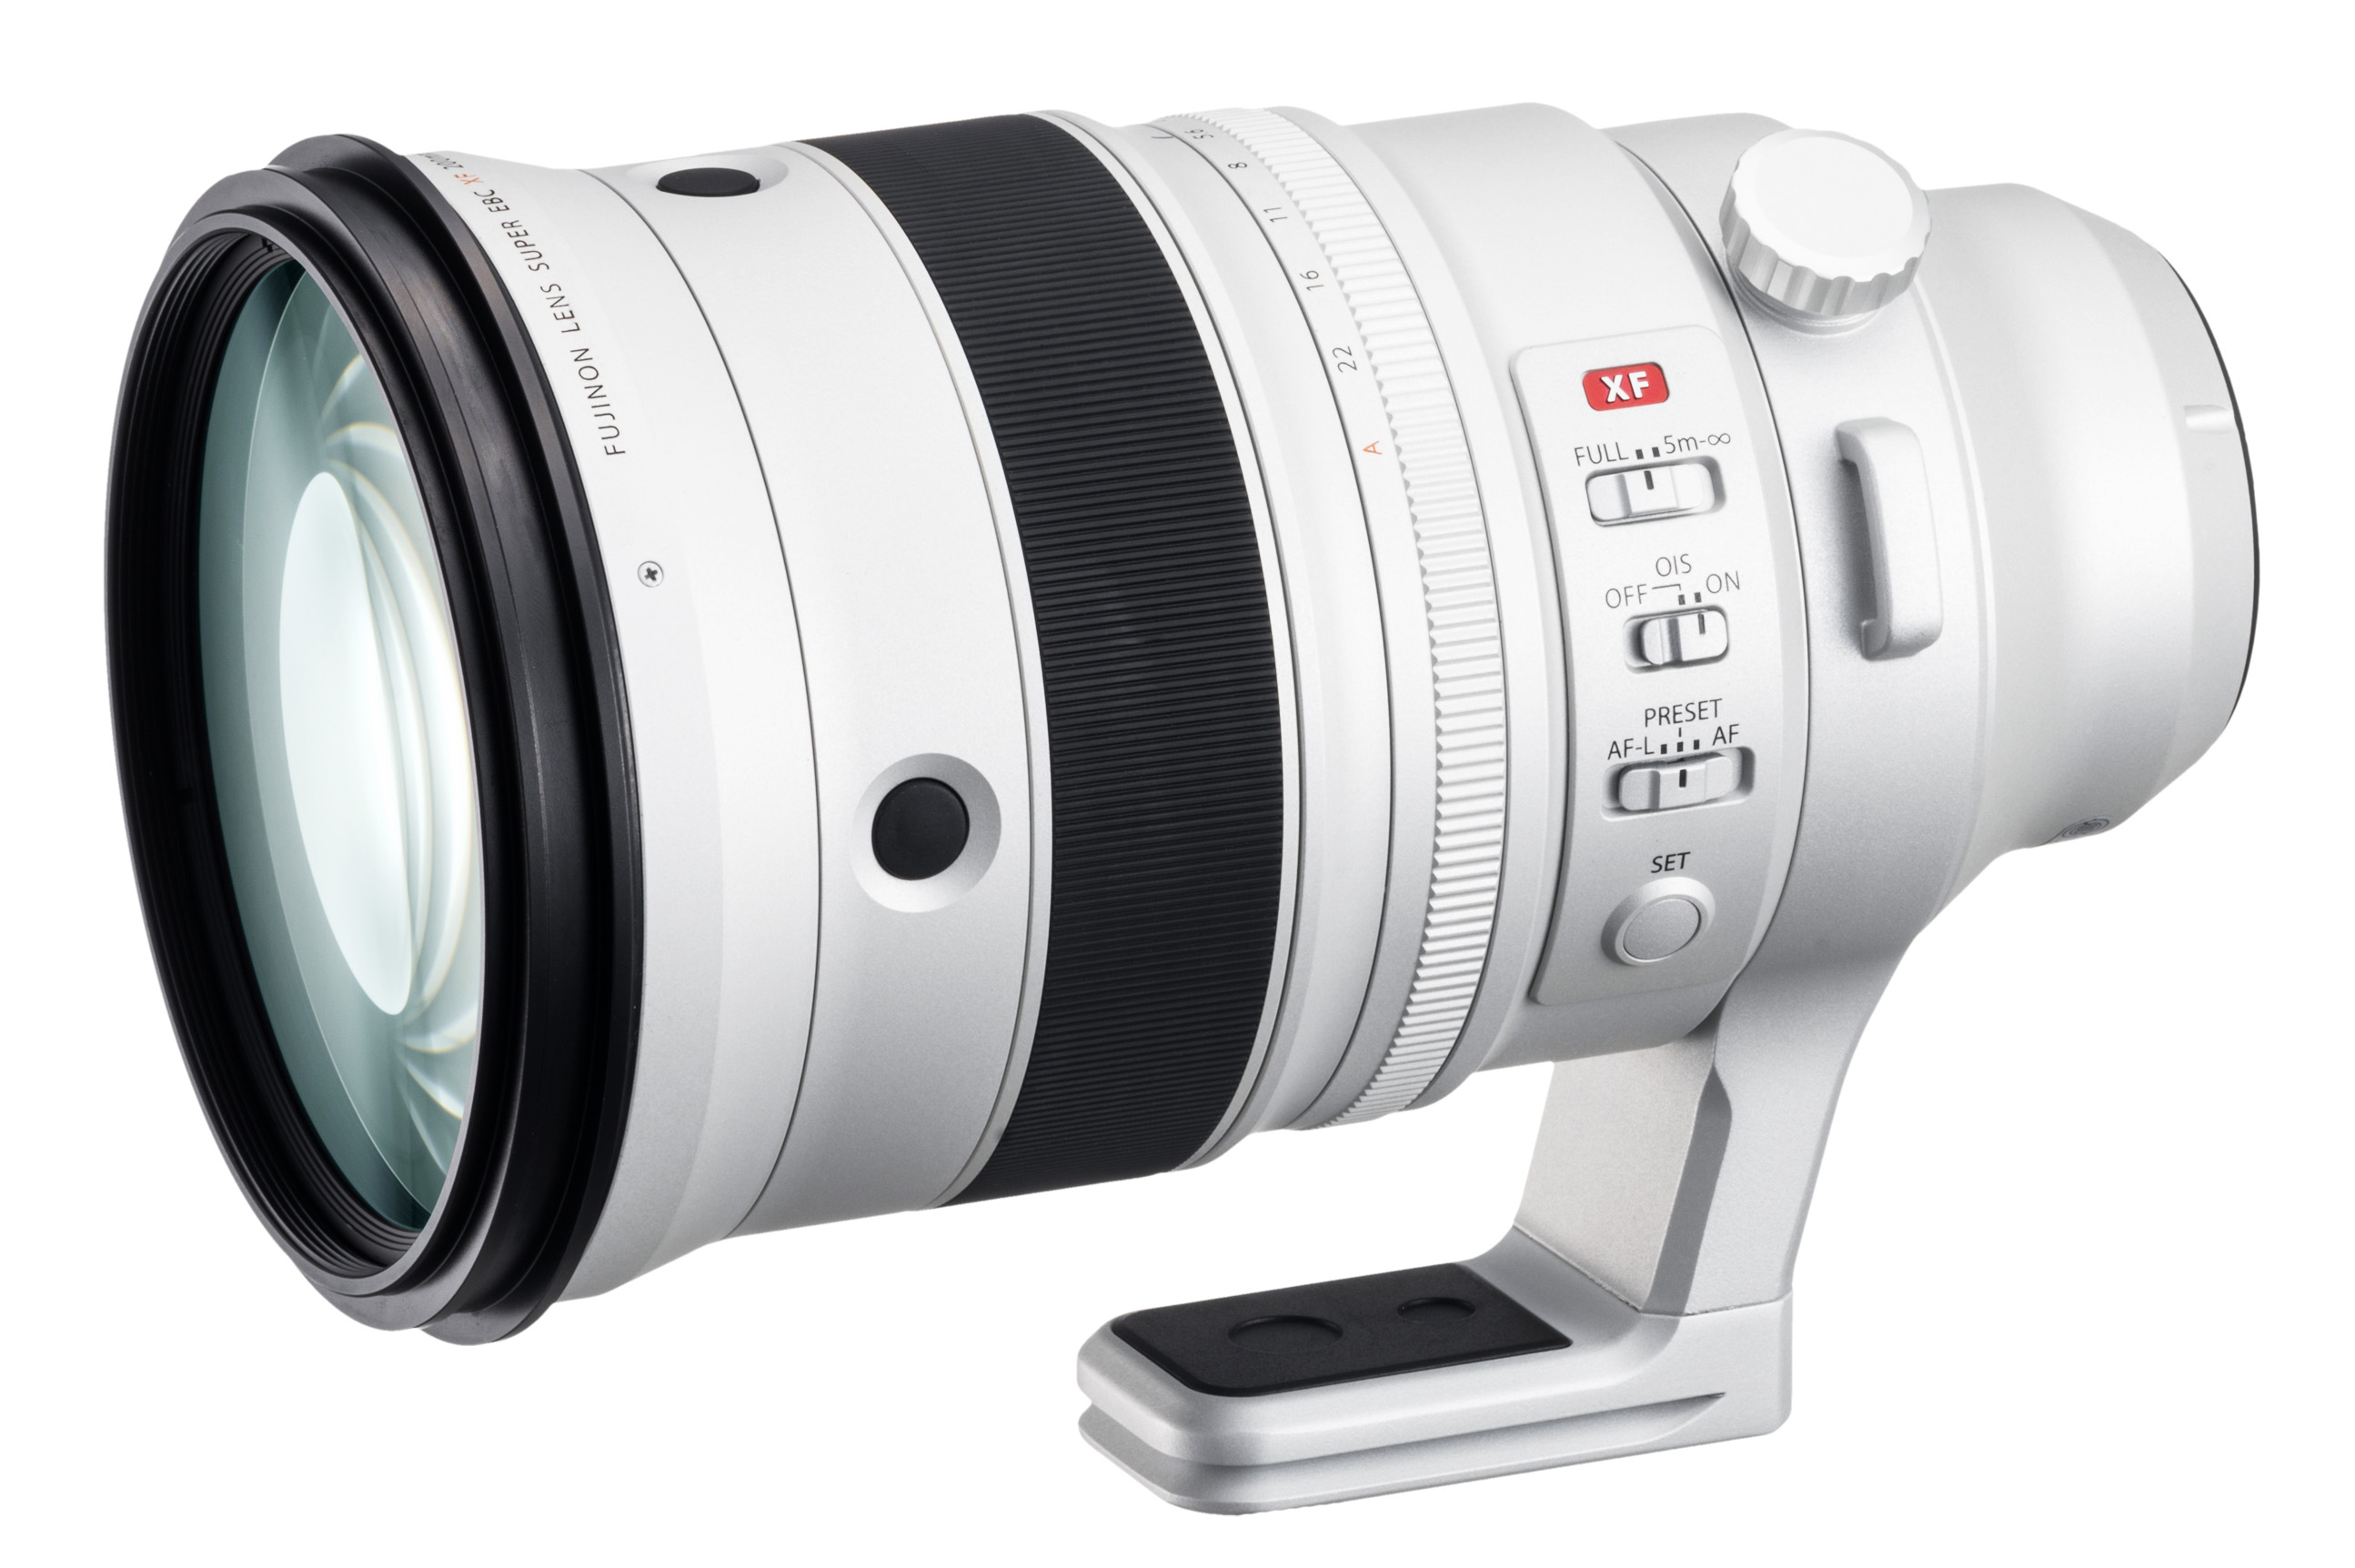 Fujifilm Xf 200mm F 2 R Lm Ois Wr Specifications And Opinions 7artisans 12mm 28 For Fuji Black